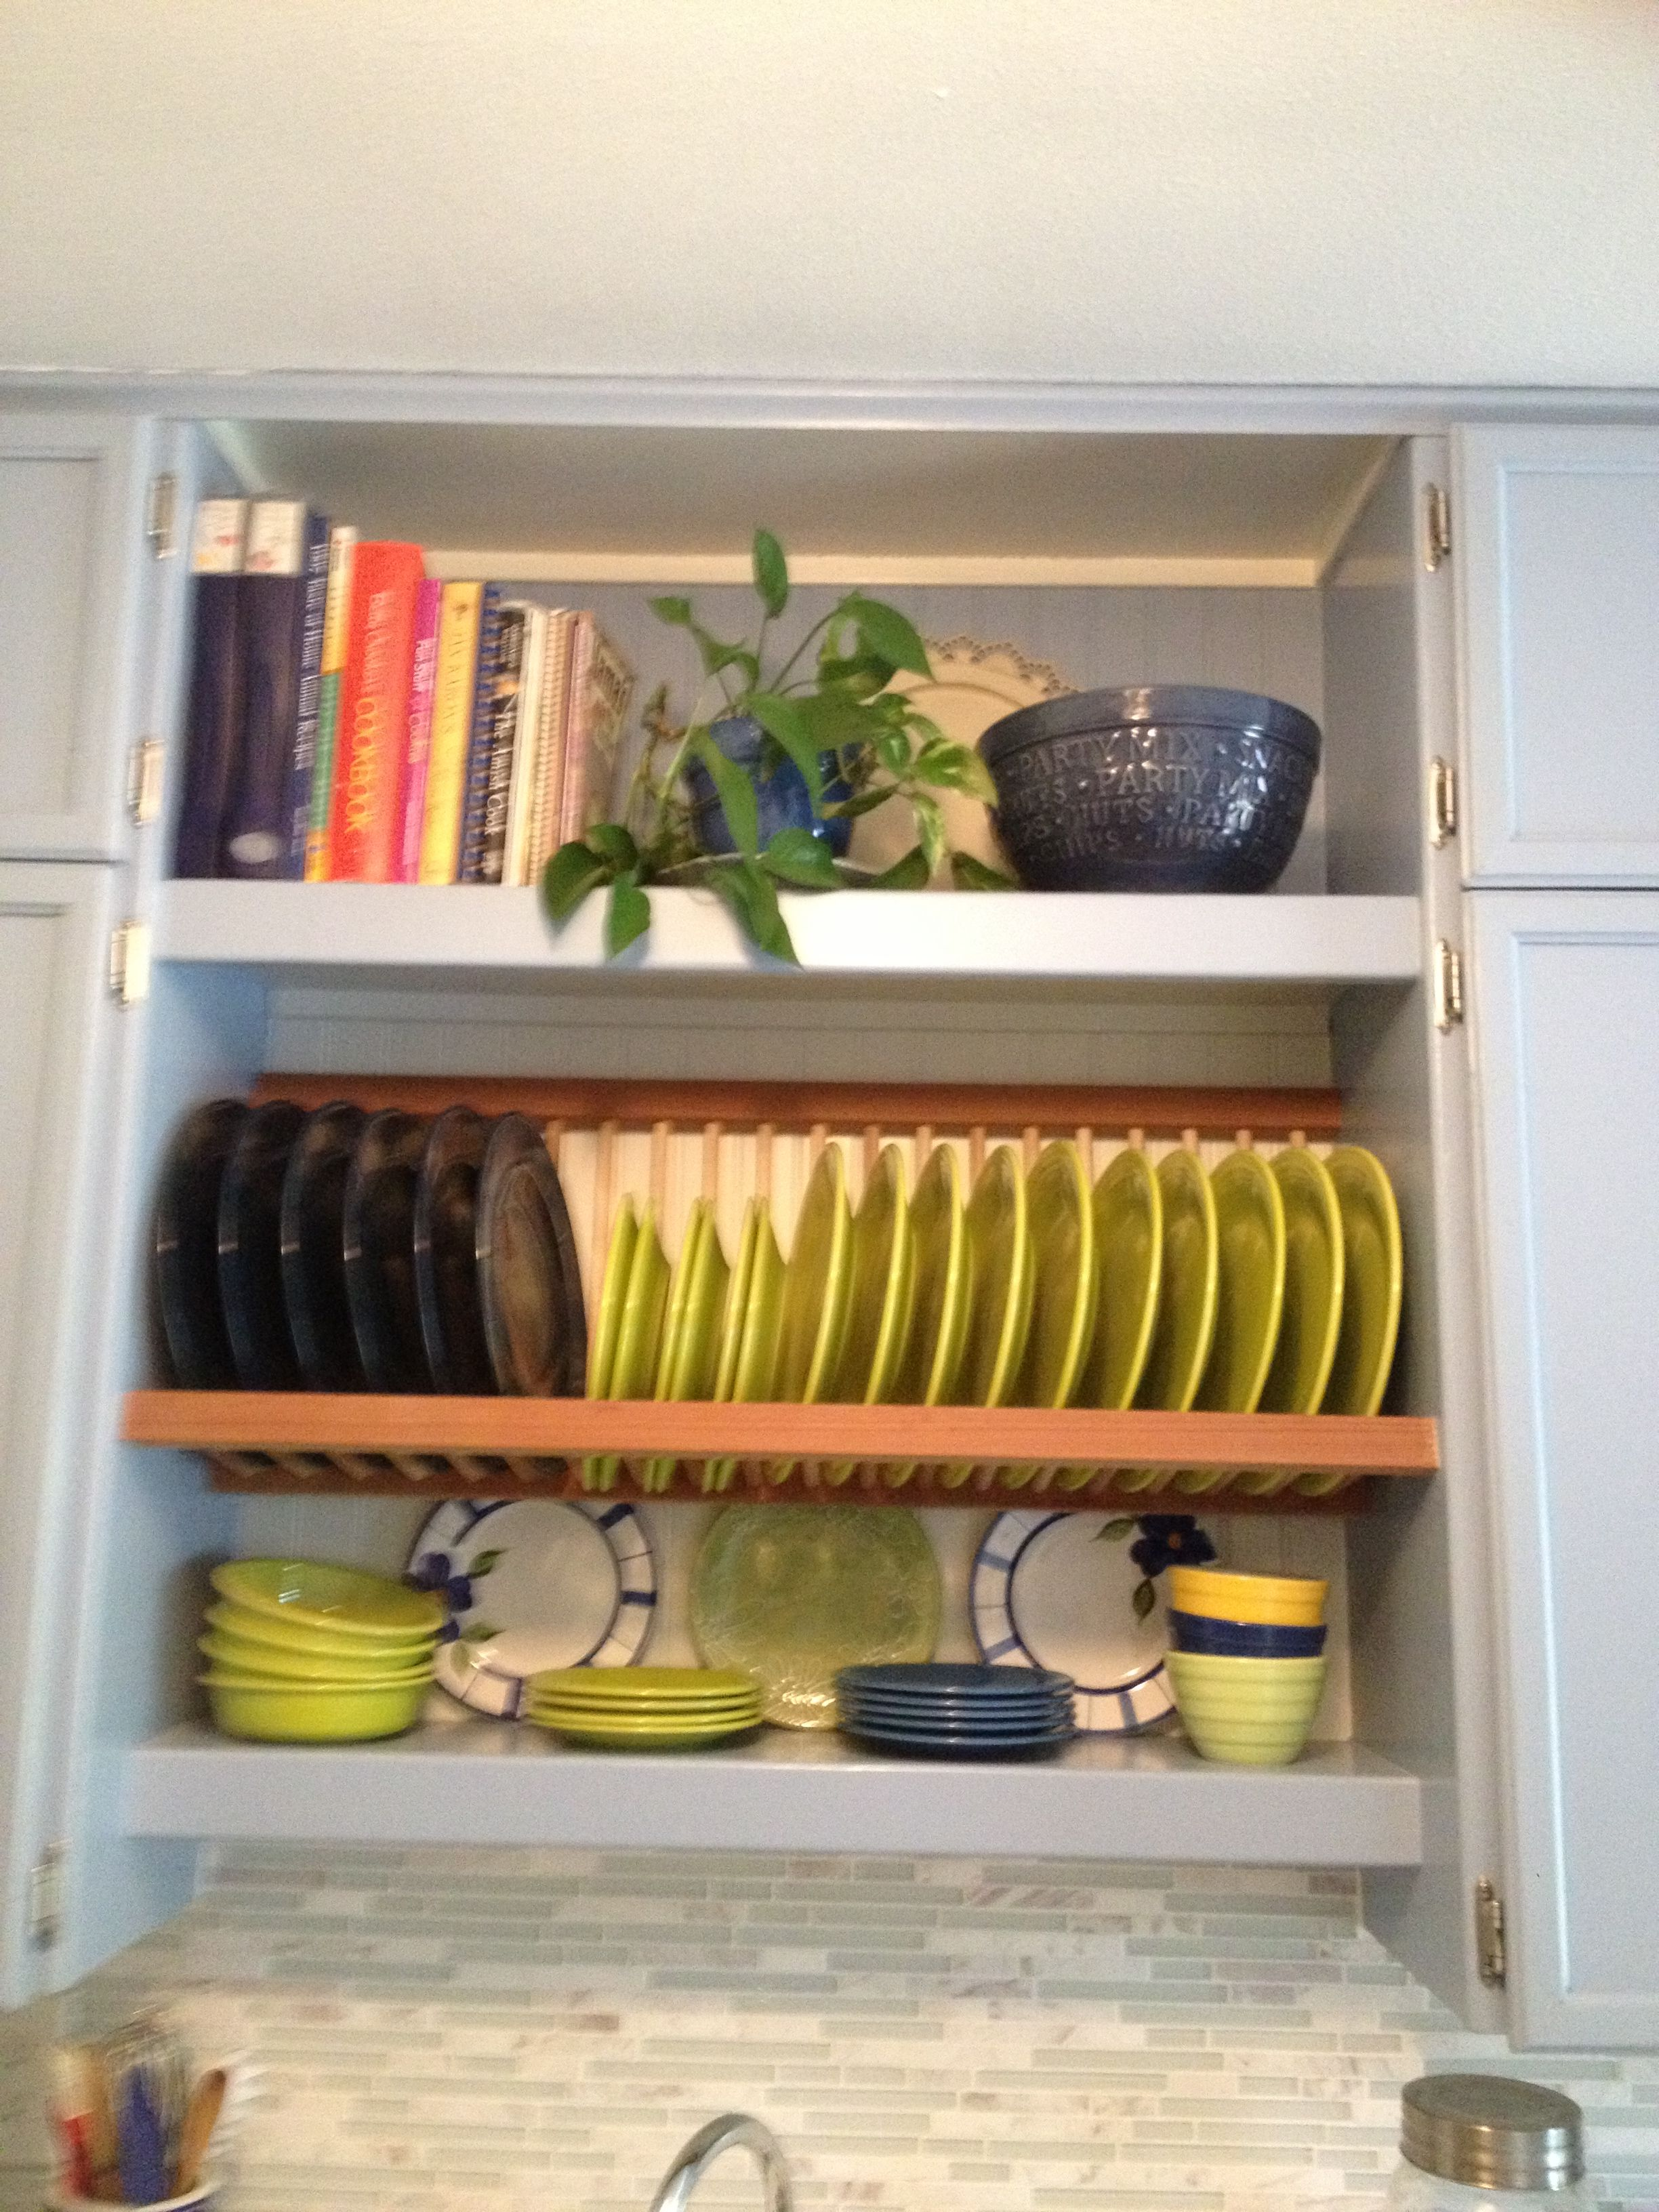 Kitchen plate rack and shelving above sink